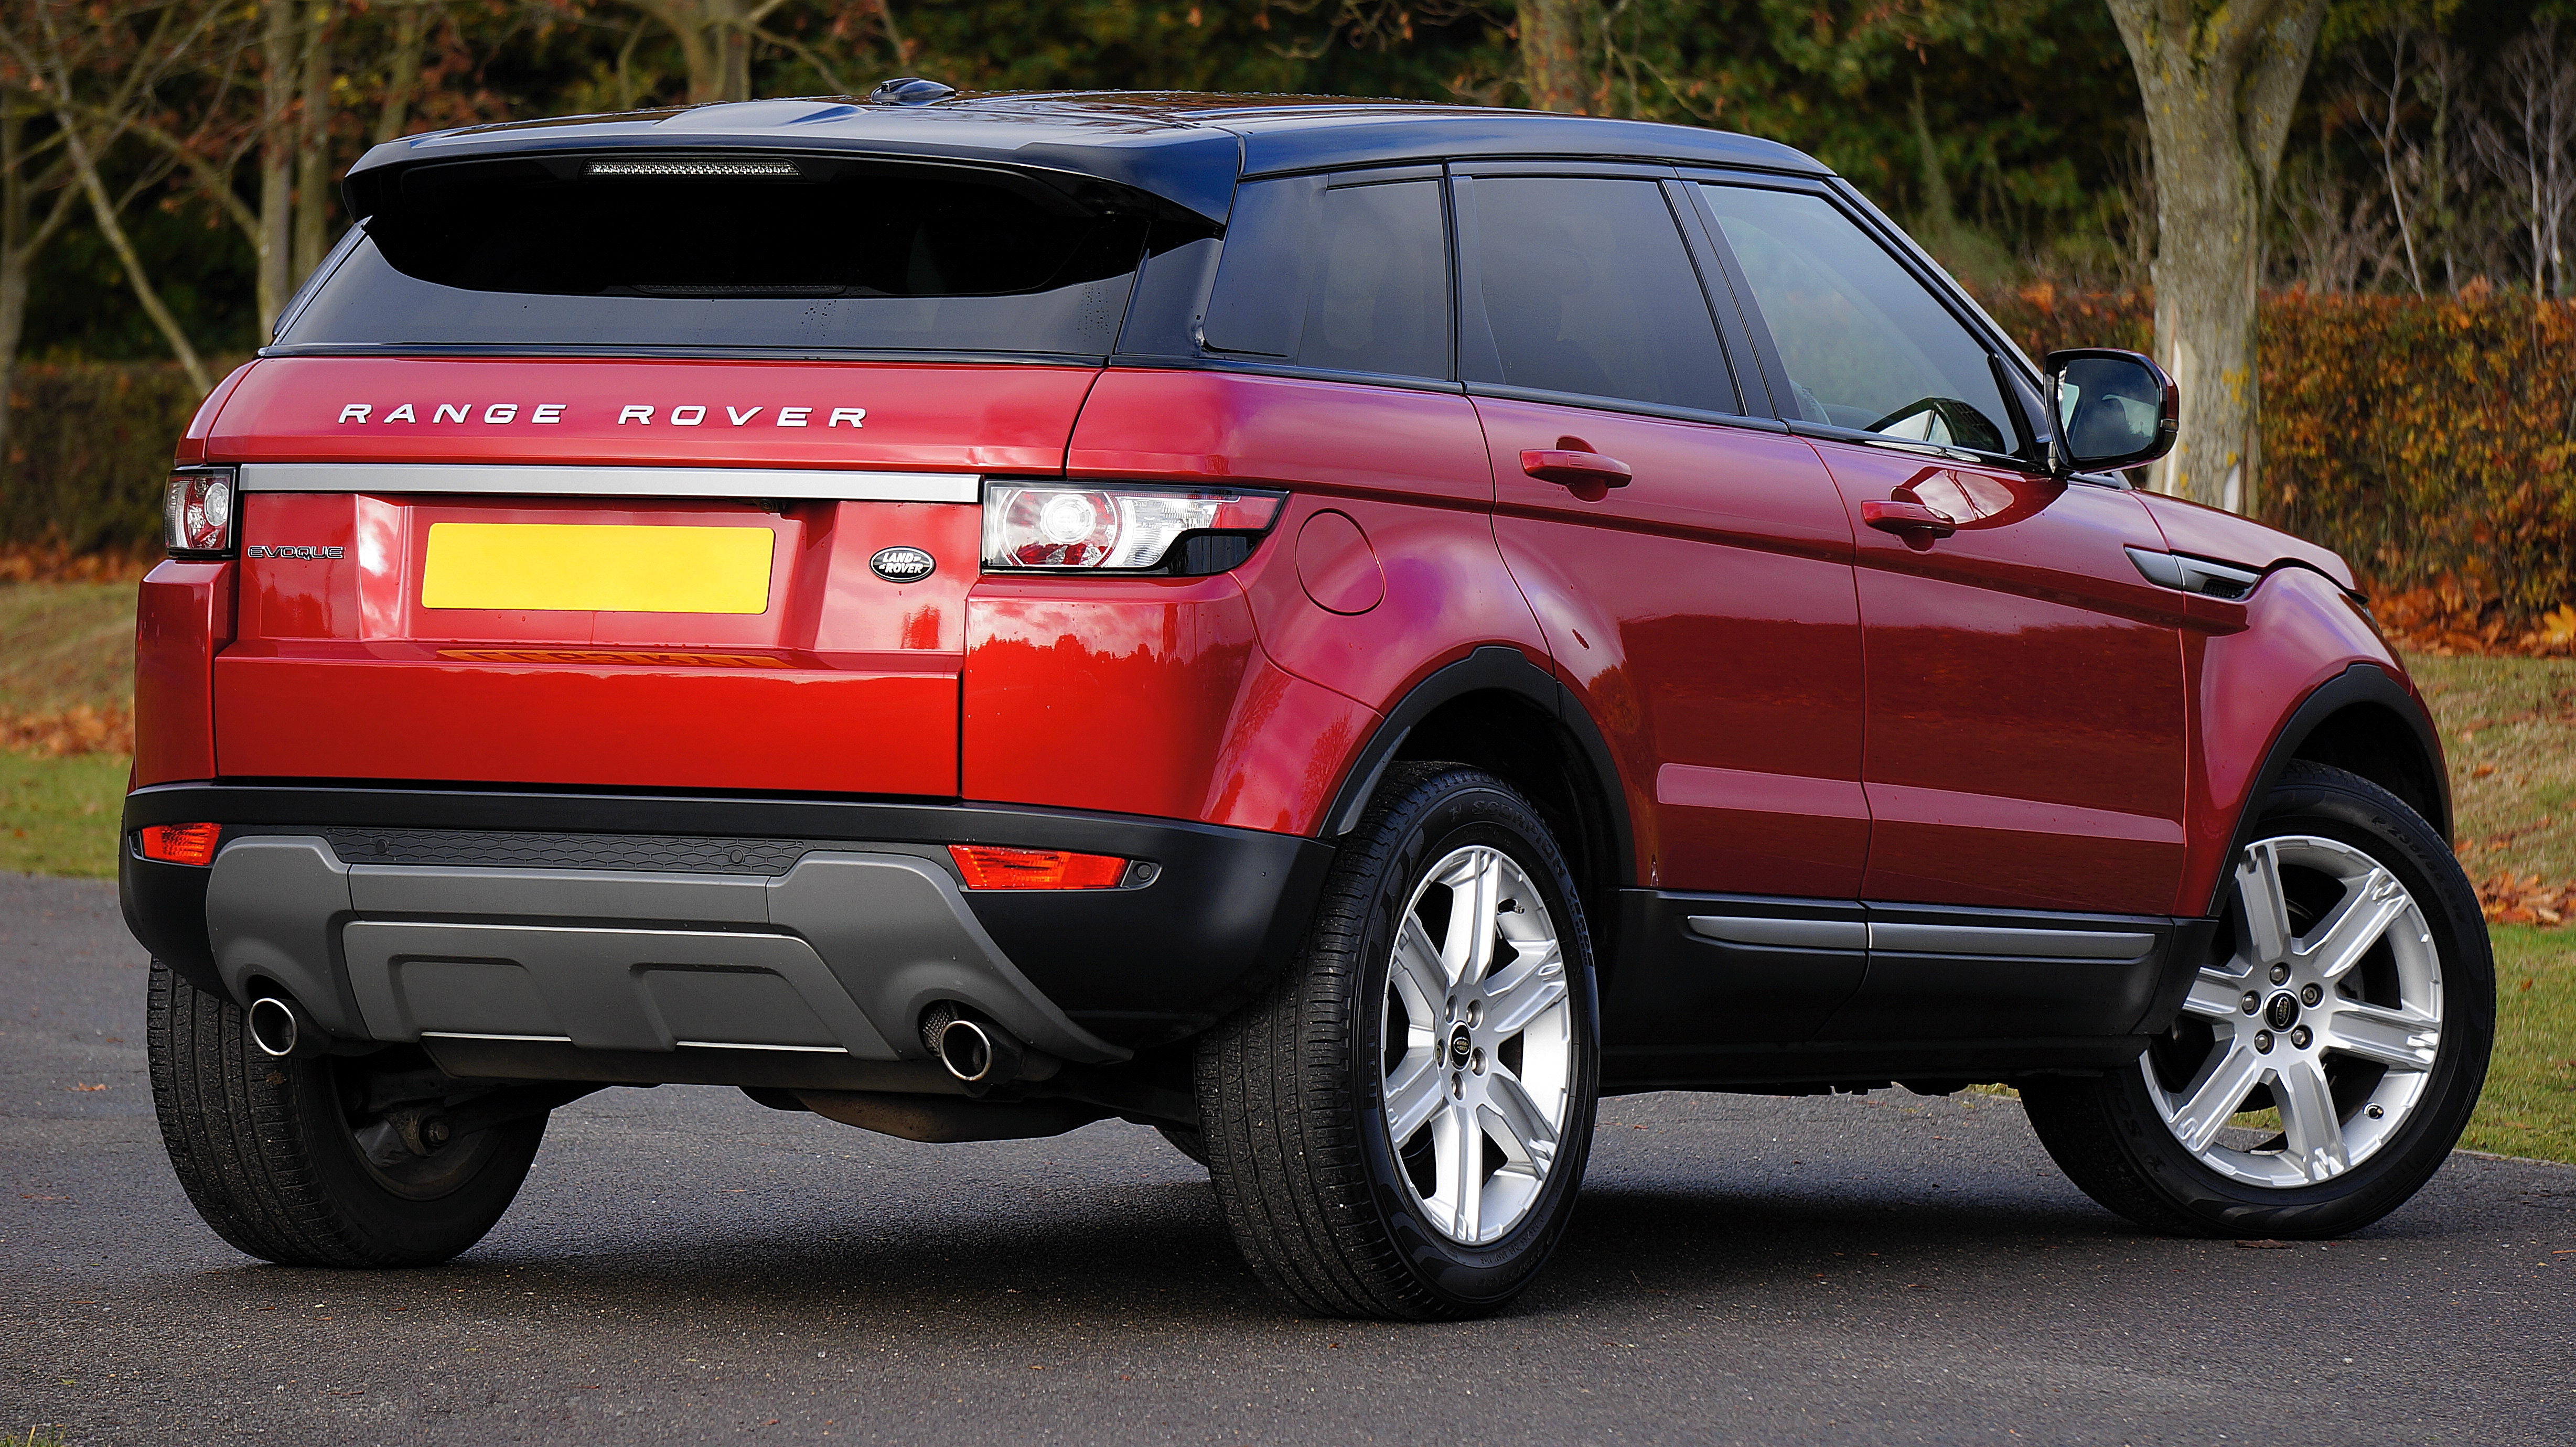 Red land rover range rover photo